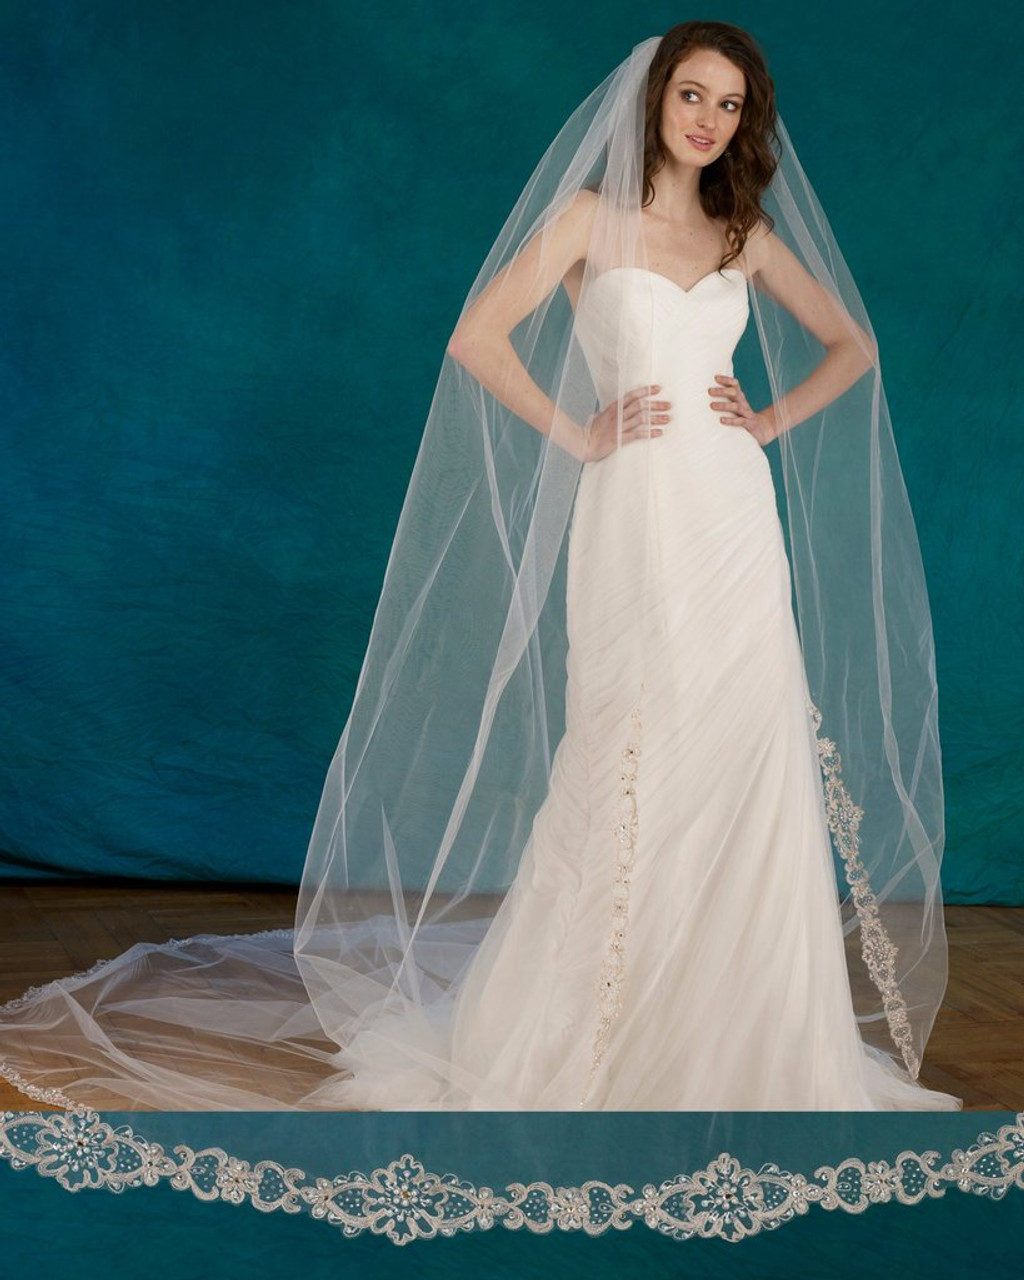 "Marionat Bridal Veils - 120"" Embroidered veil with pearls beads and rhinestones."